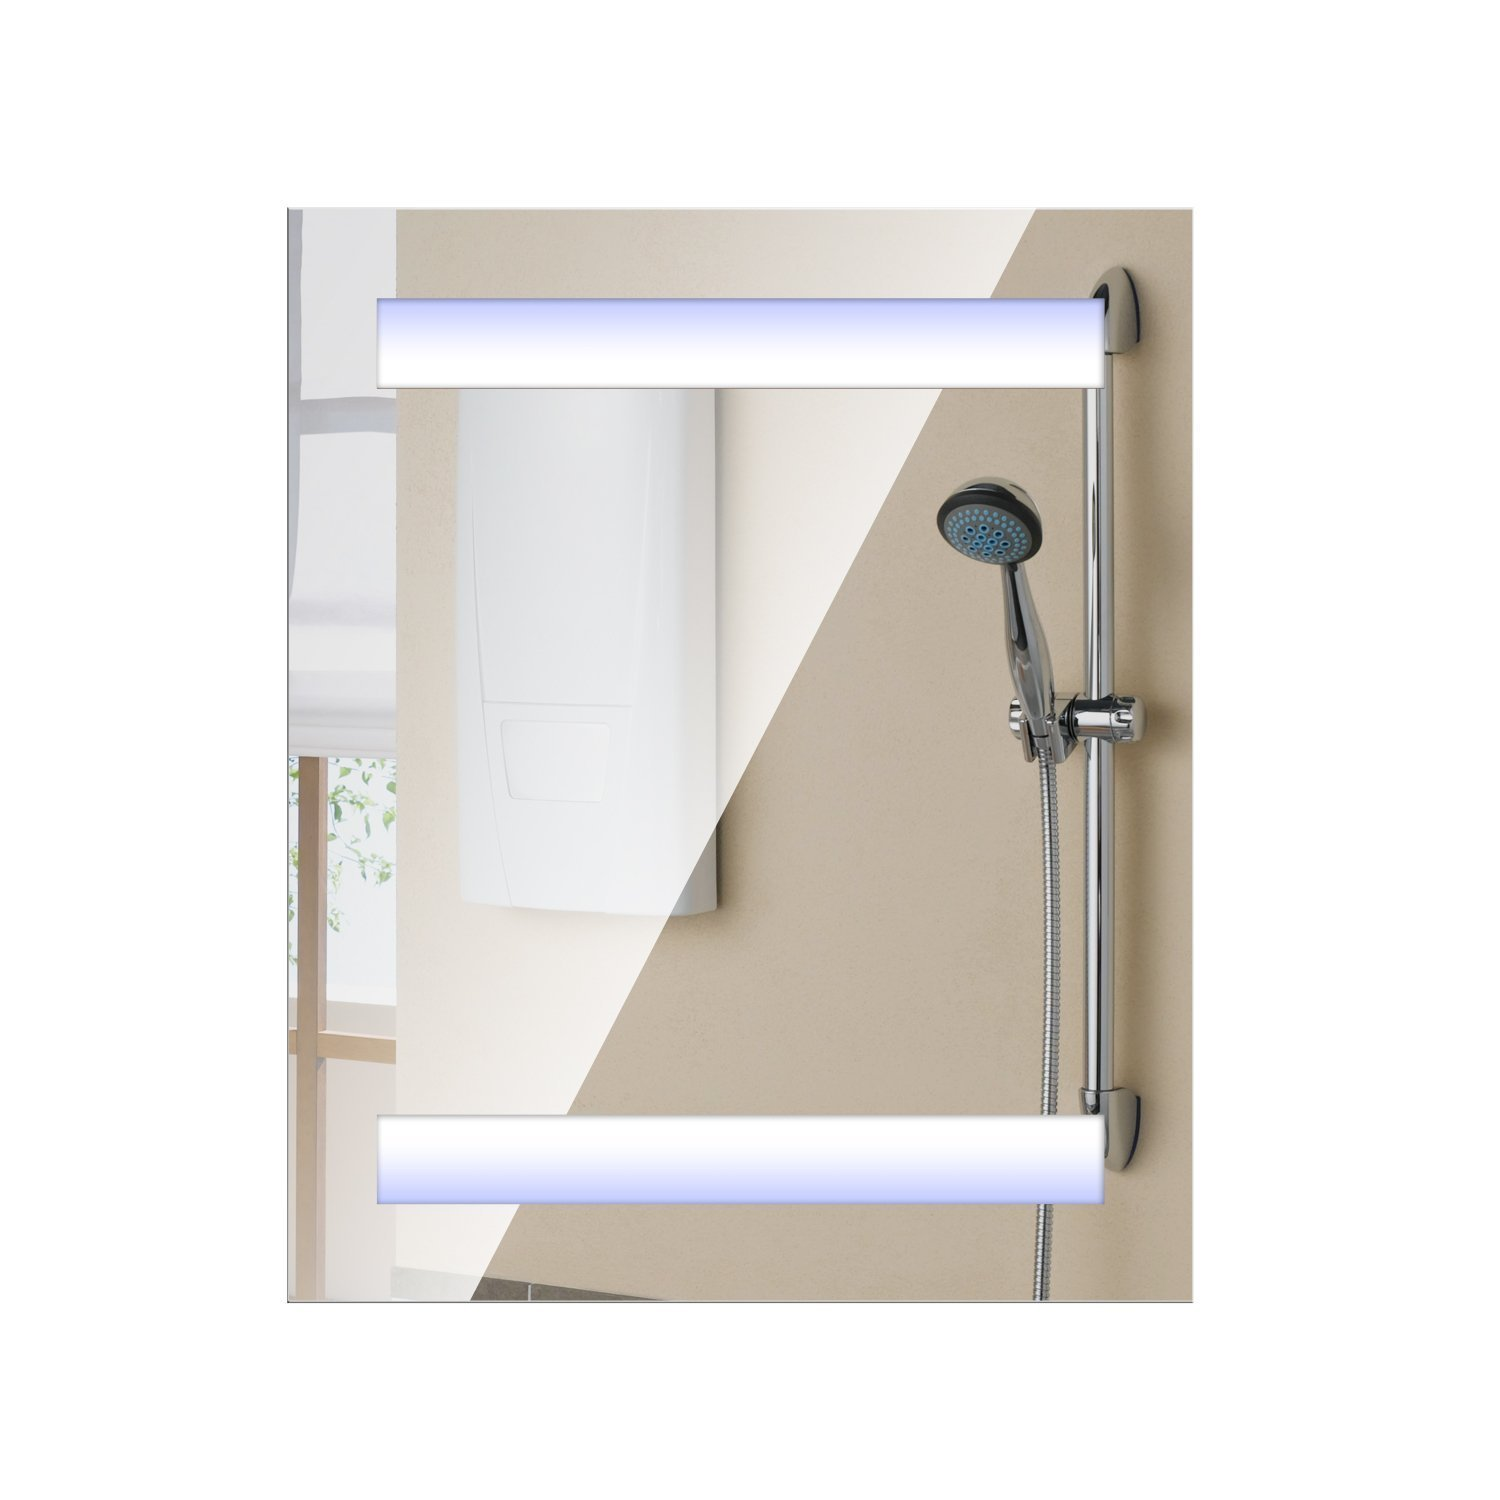 "HOMCOM Vertical 32"" LED Illuminated Bathroom Wall Mirror Medicine Cabinet - Dual Strip LEDs"